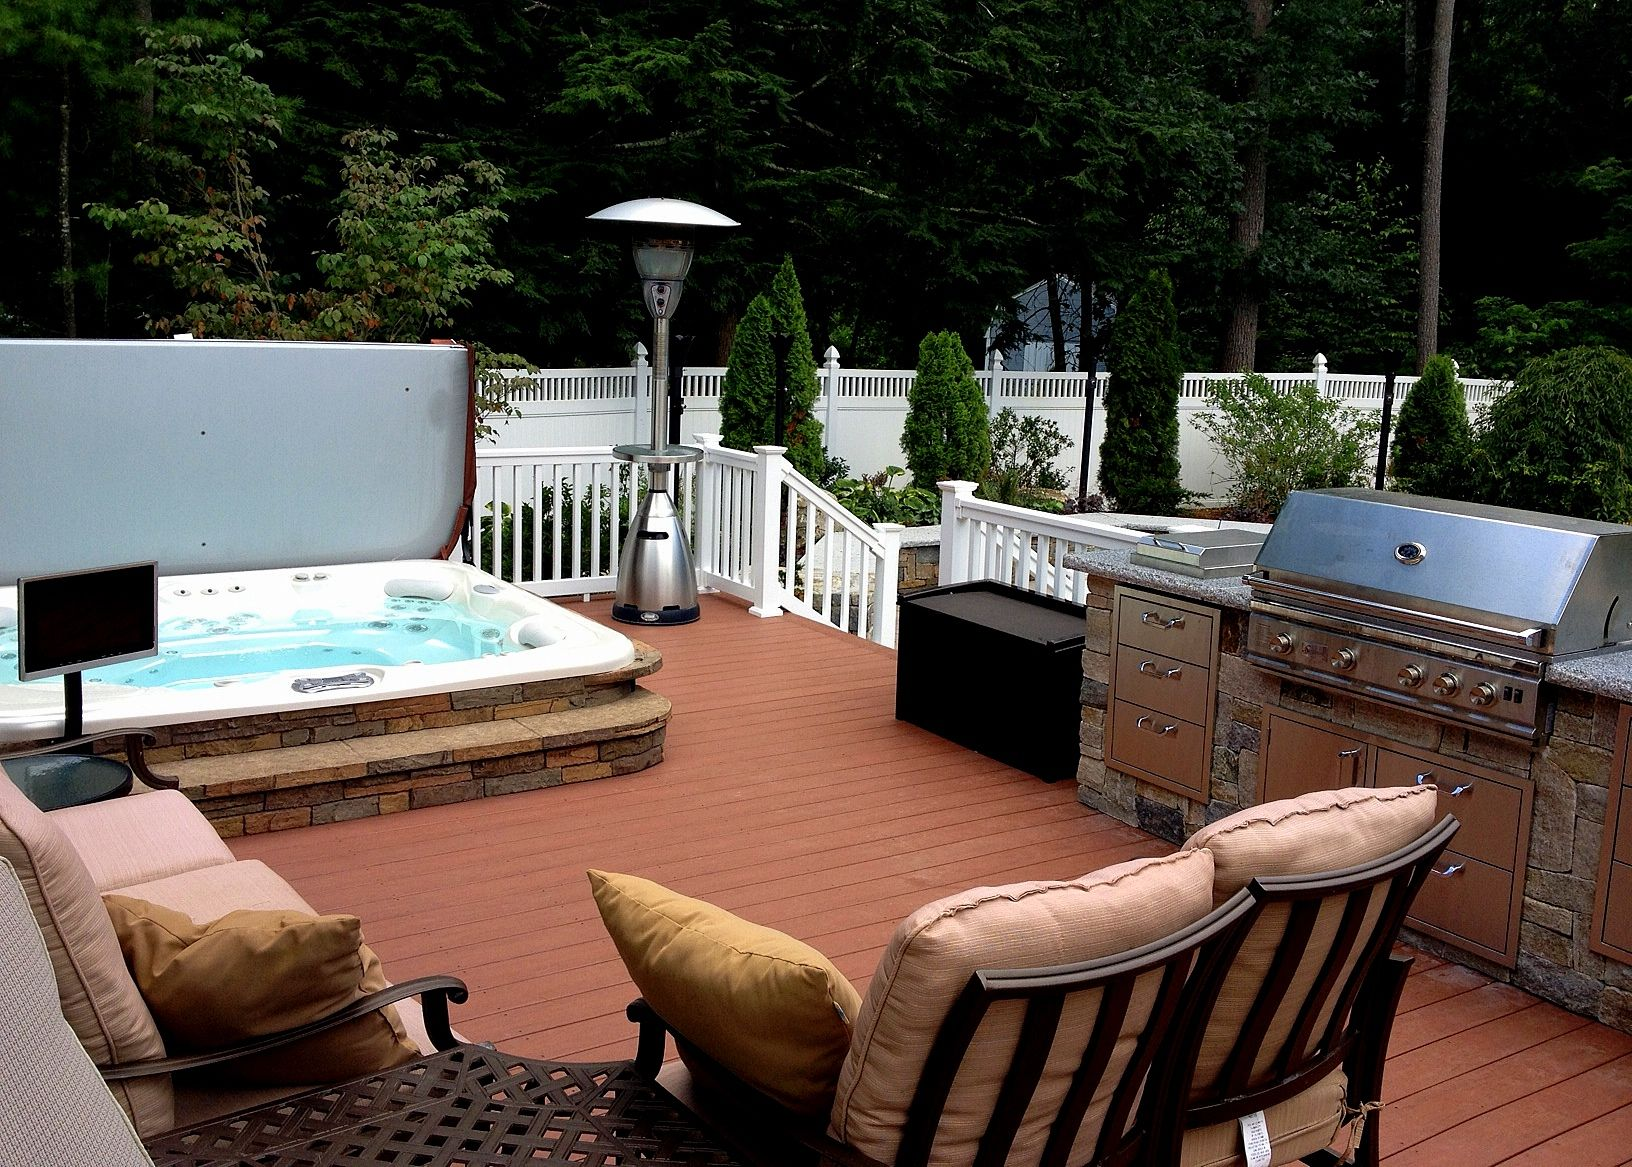 Hot Spring Spa Stone With Wireless Tv And Entertainment Groton Ma Purchased From Oasis Tub Sauna Of Nashua Nh